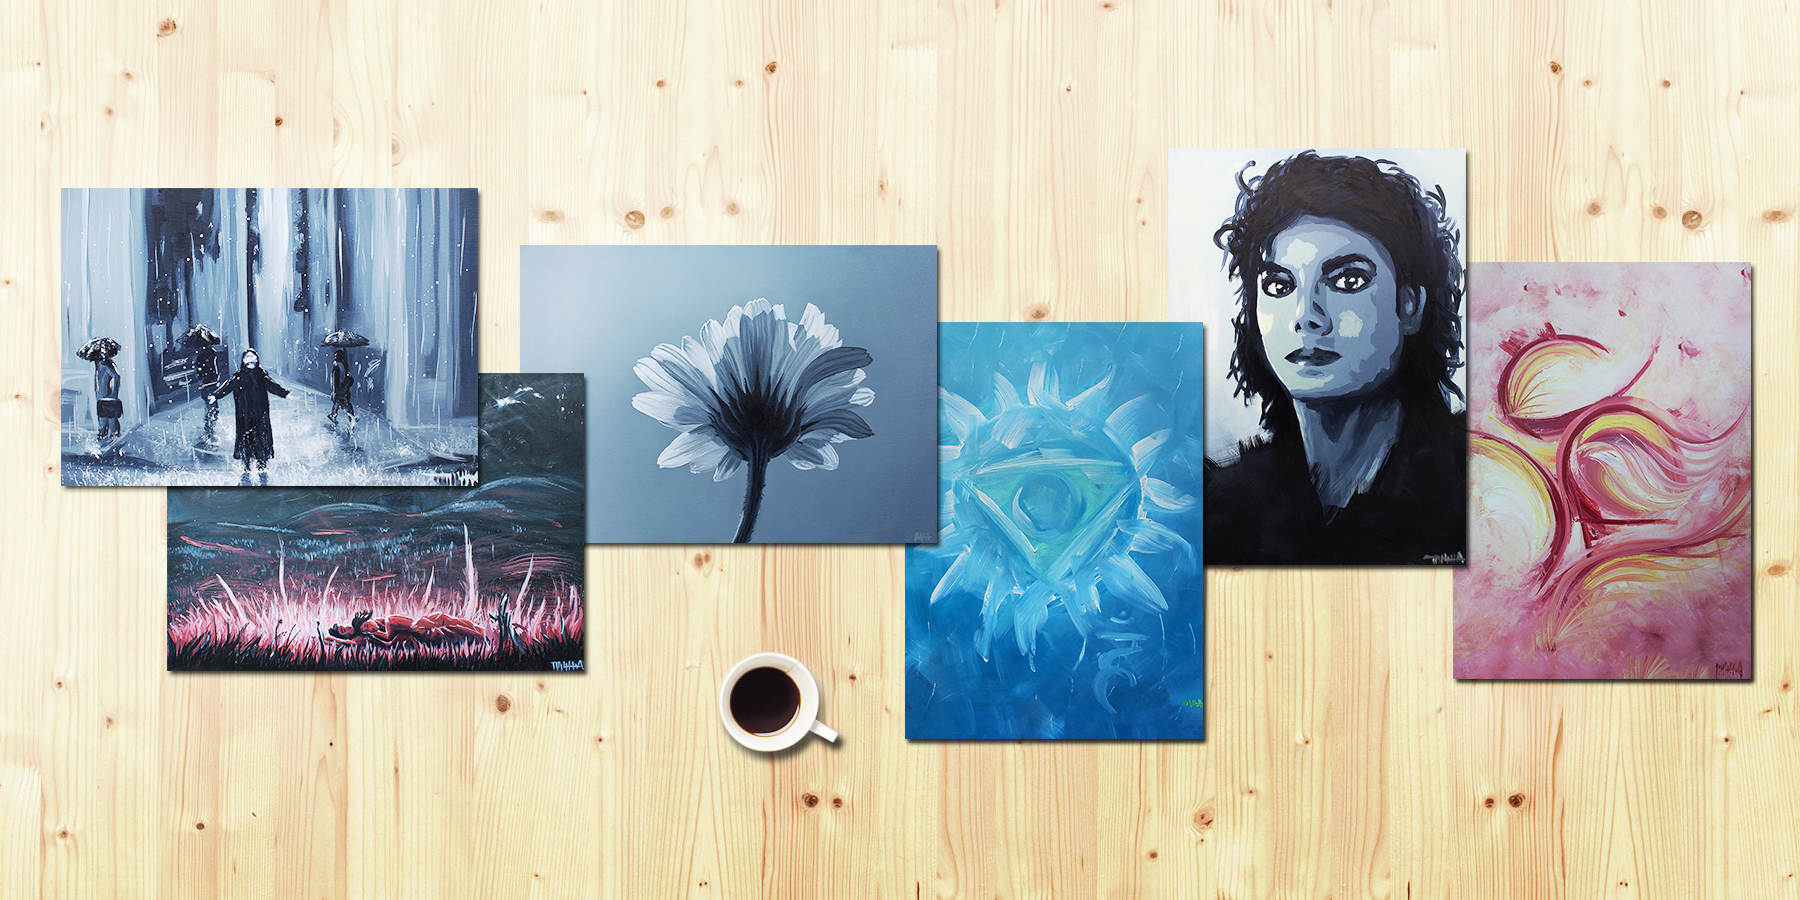 New collection of prints